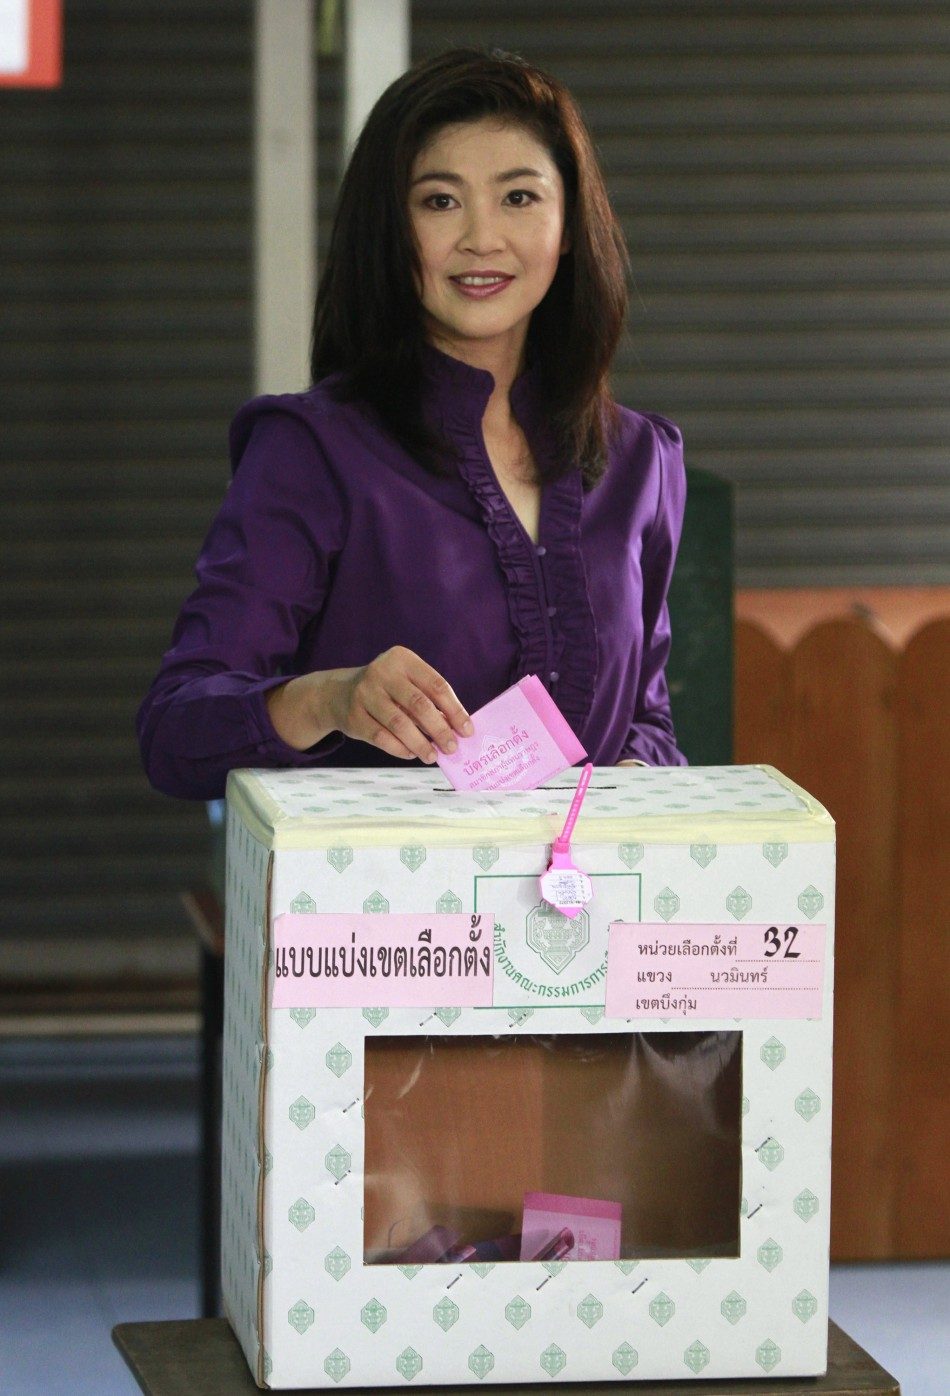 Puea Thai Party's candidate Yingluck Shinawatra drops her vote into a ballot box at a polling station in Bangkok